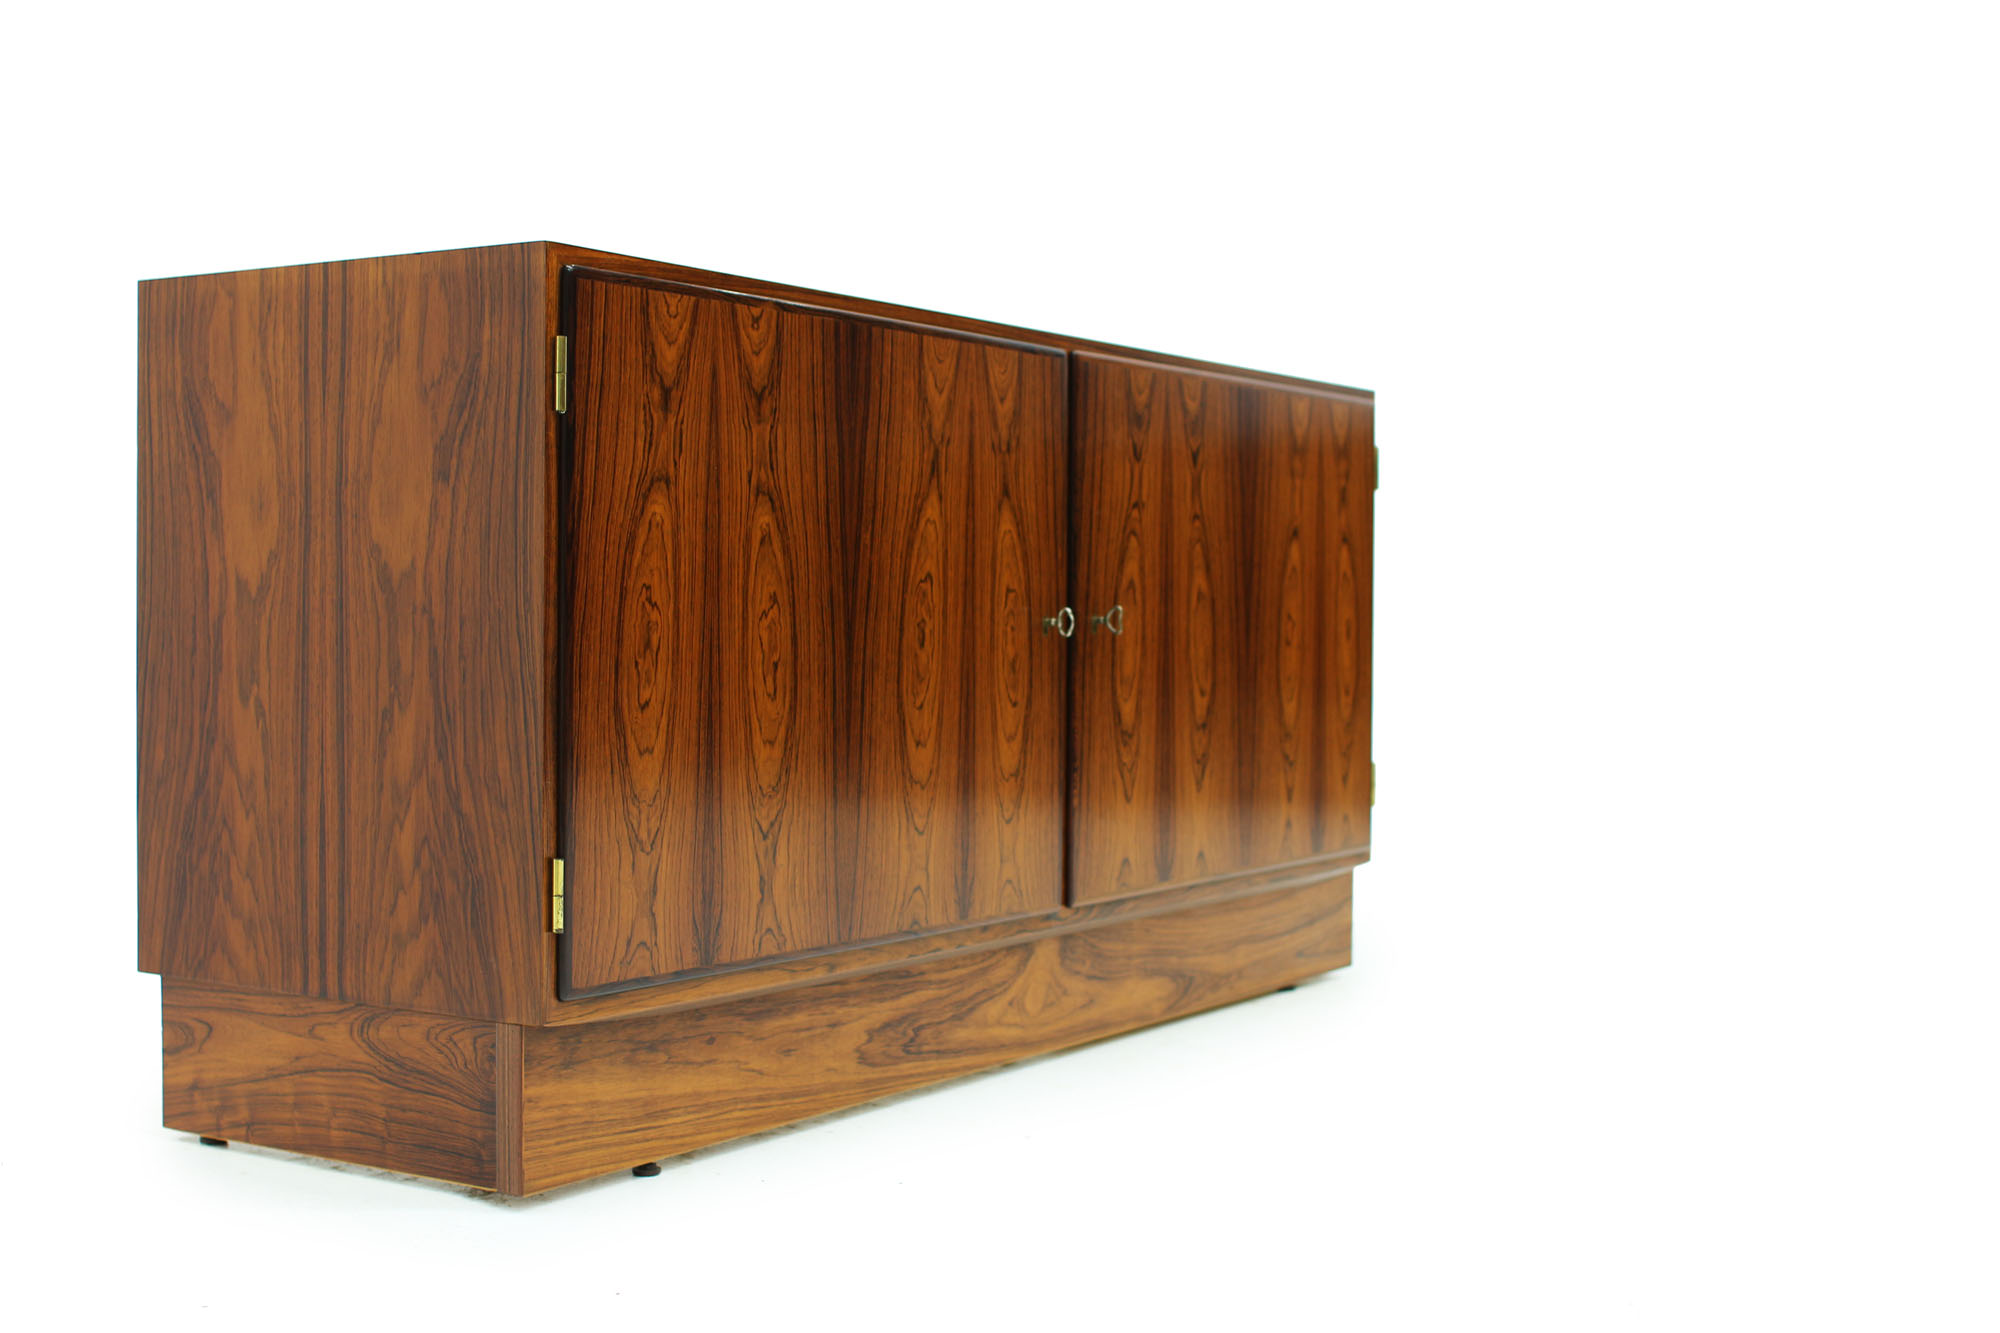 Danish Poul Hundevad cabinet with pull out drawer original keys in Rosewood (5).jpg